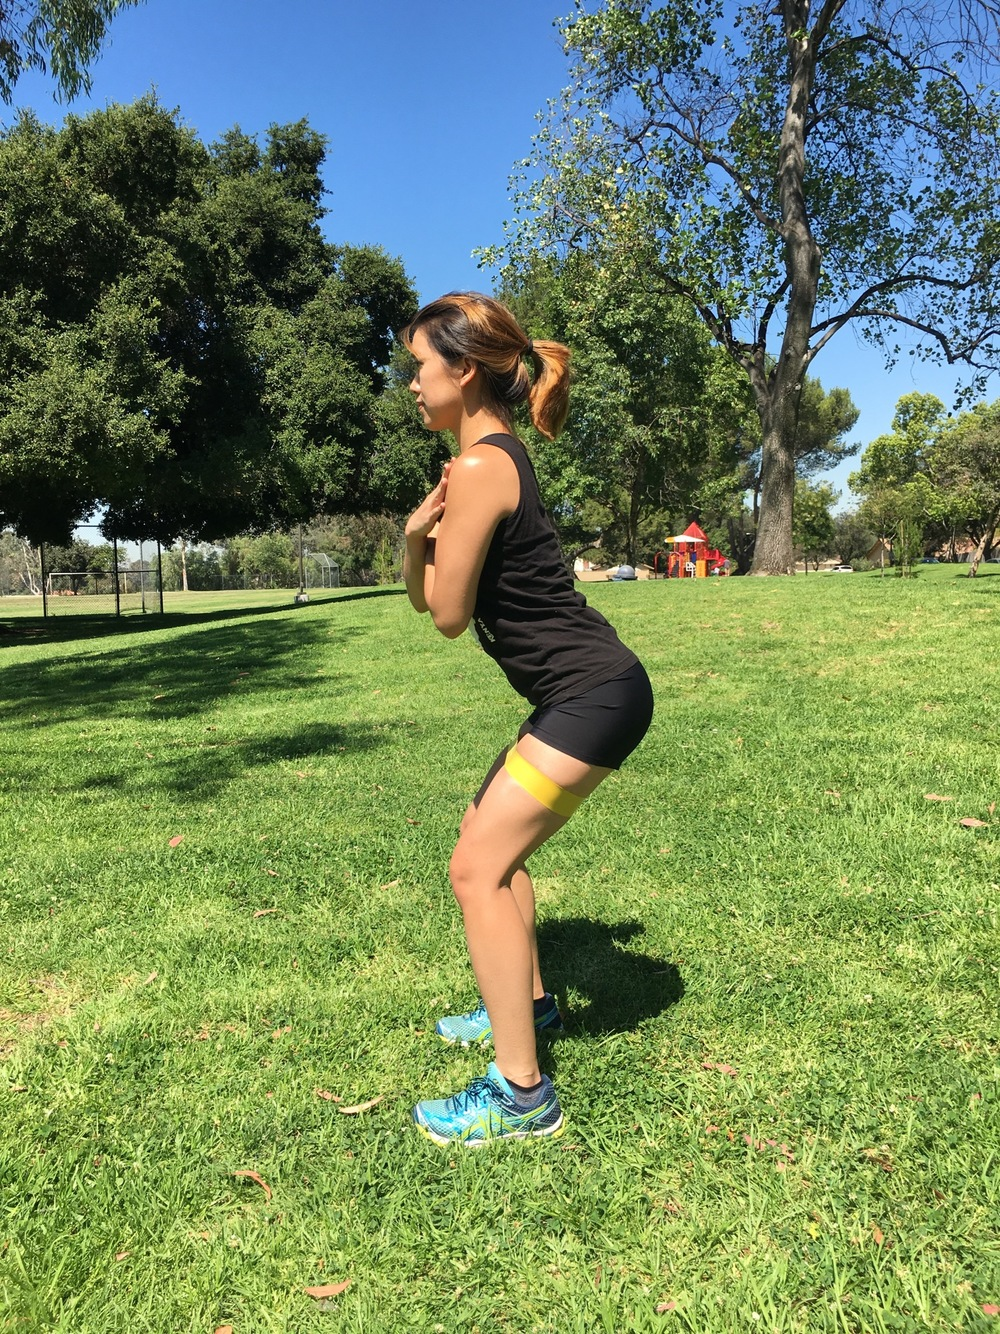 Step 1: Starting position lateral view. Make sure your knees are behind the front of your toes,your back is straight with your core contracted, and your bottom is back as if you were trying to sit.